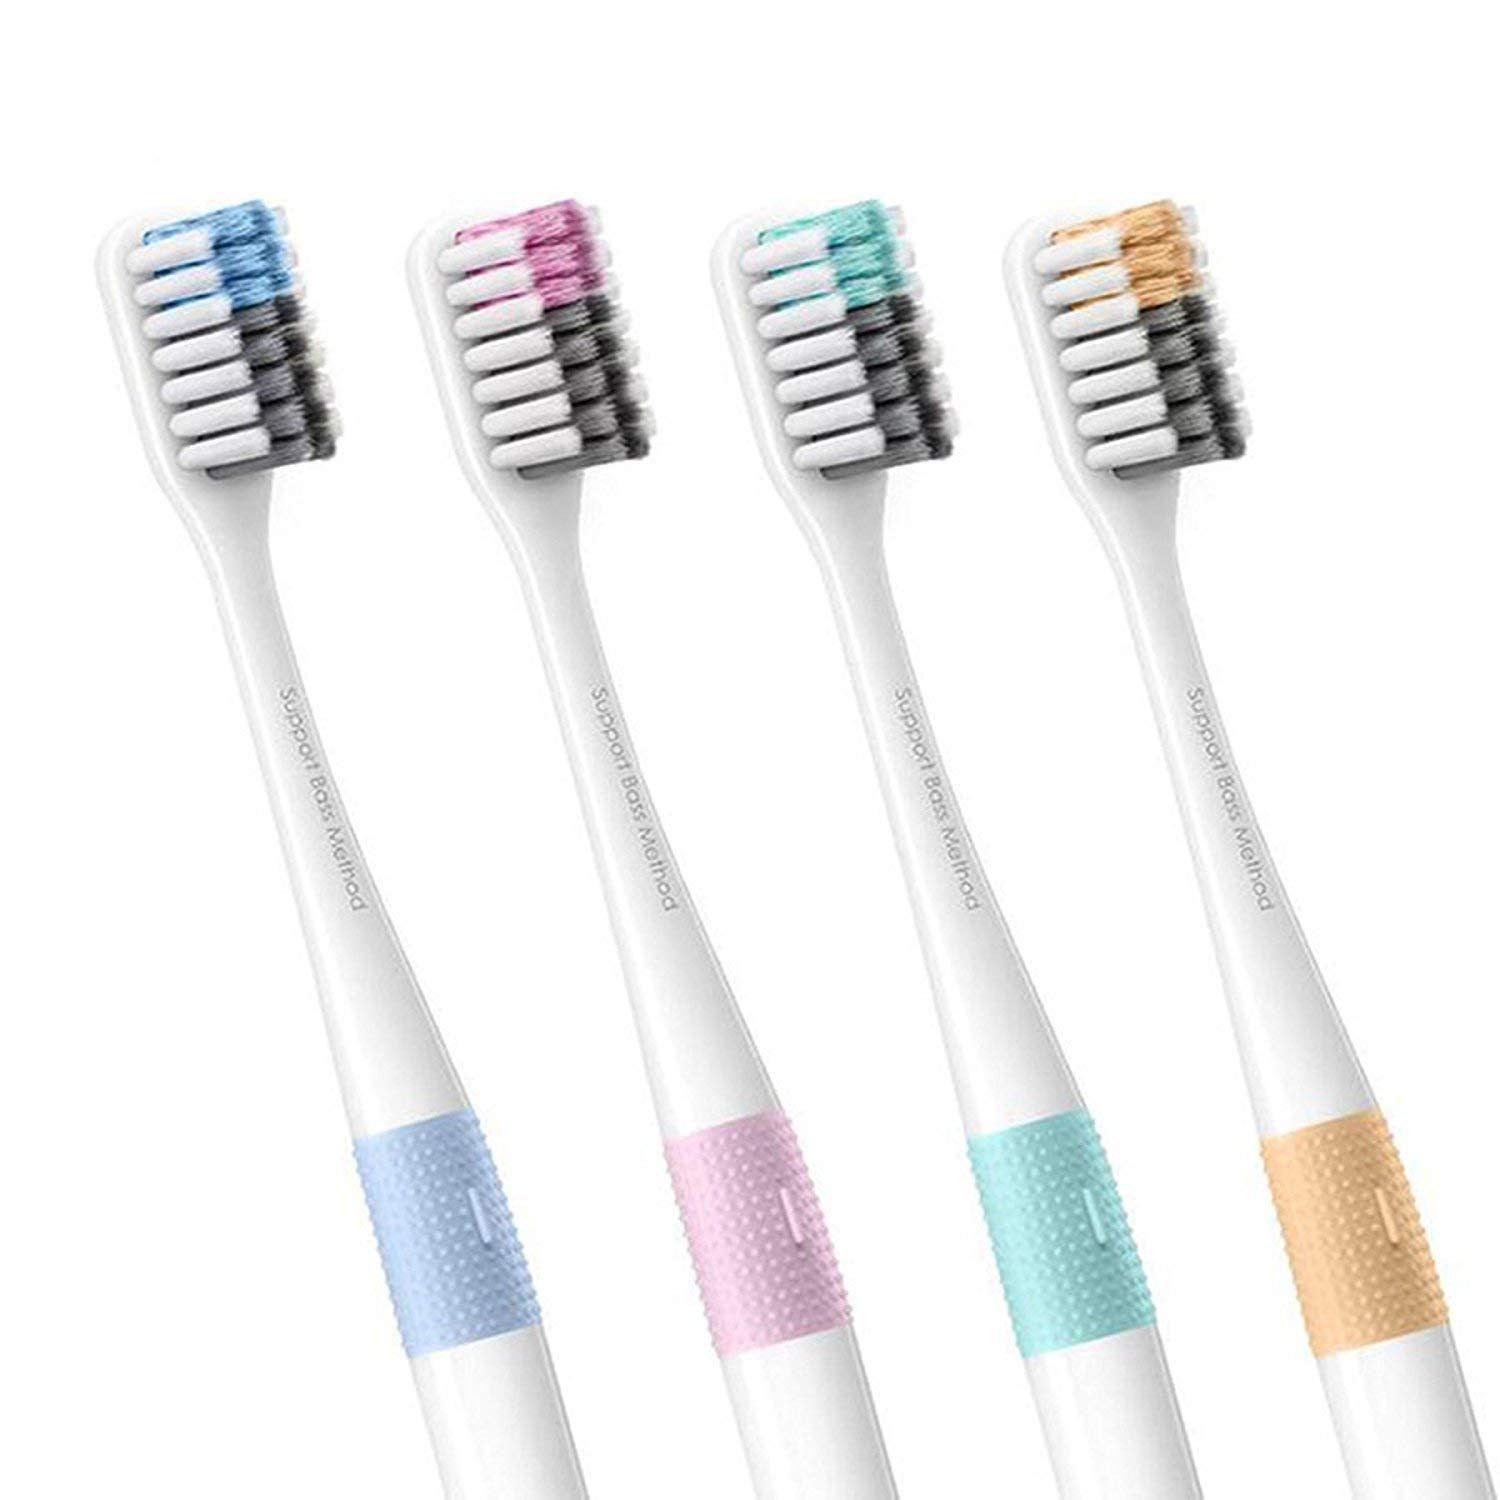 Xiaomi Doctor B Bass Method antibacterial designer toothbrush (set of 4) w/ travel case